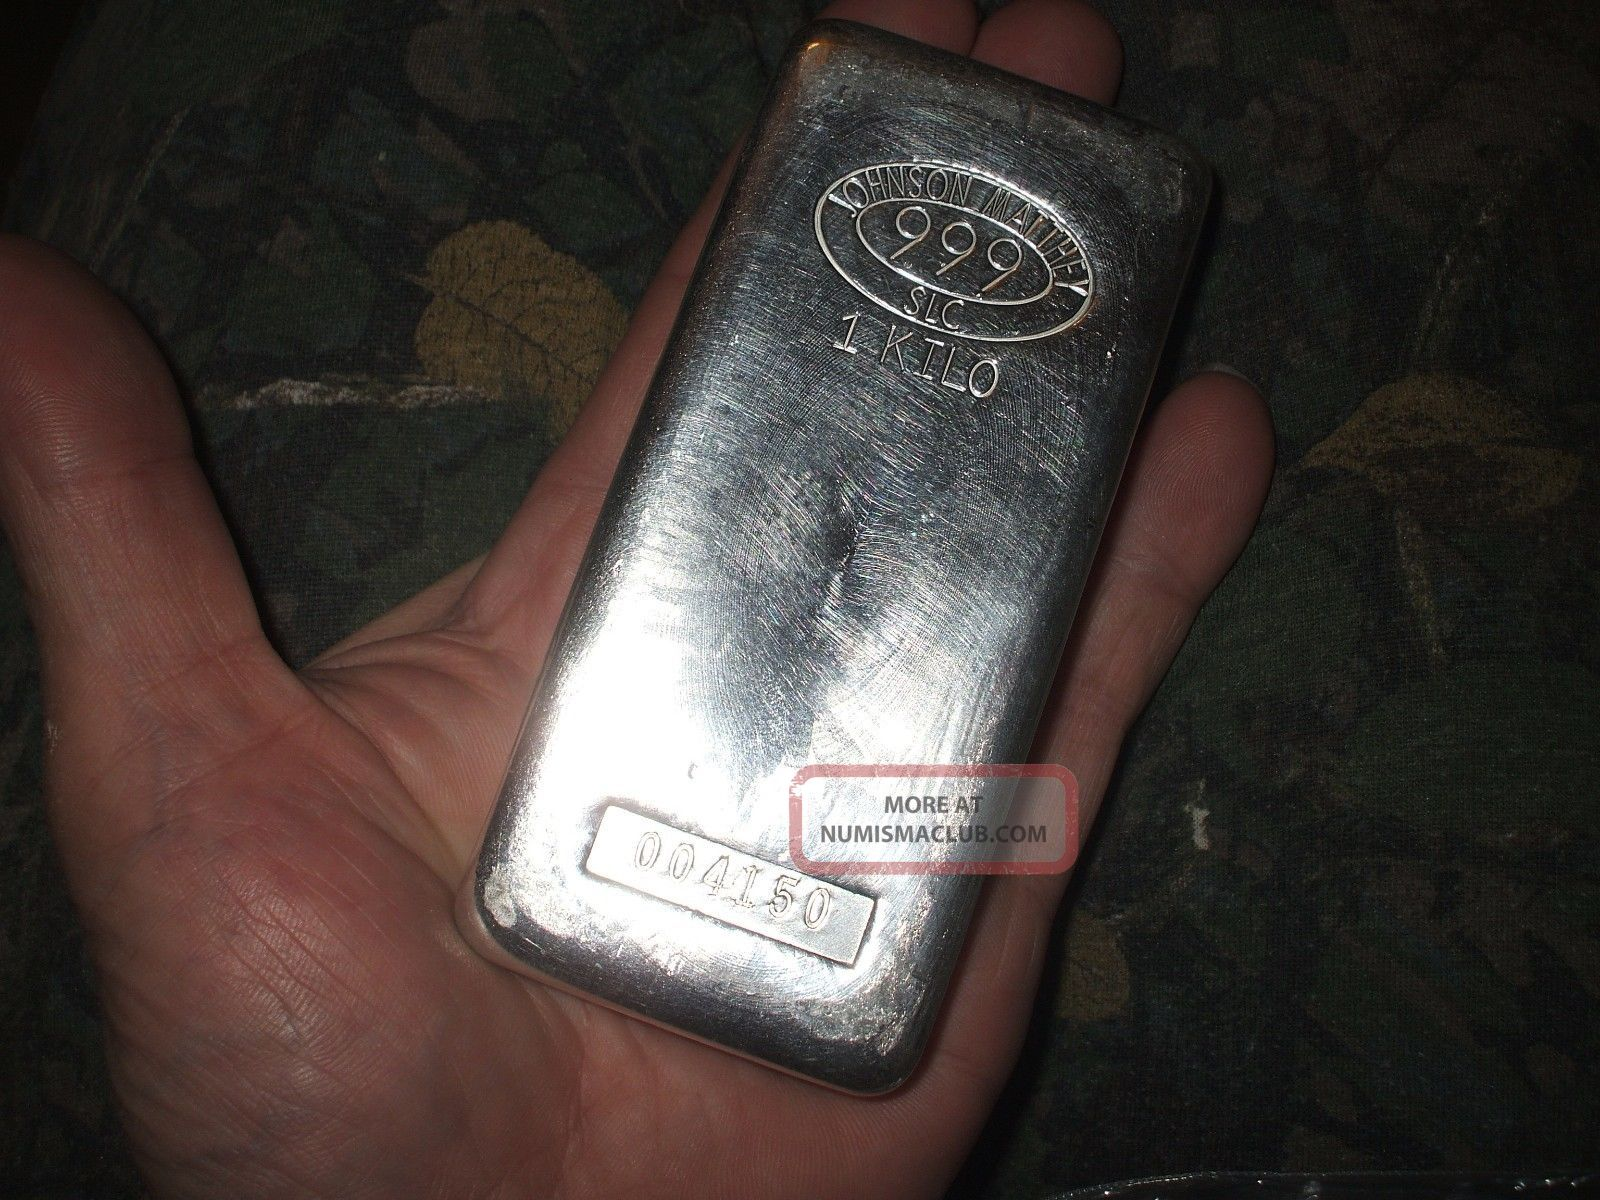 Johnson Matthey 1 Kilo 999 Fine Silver Bar